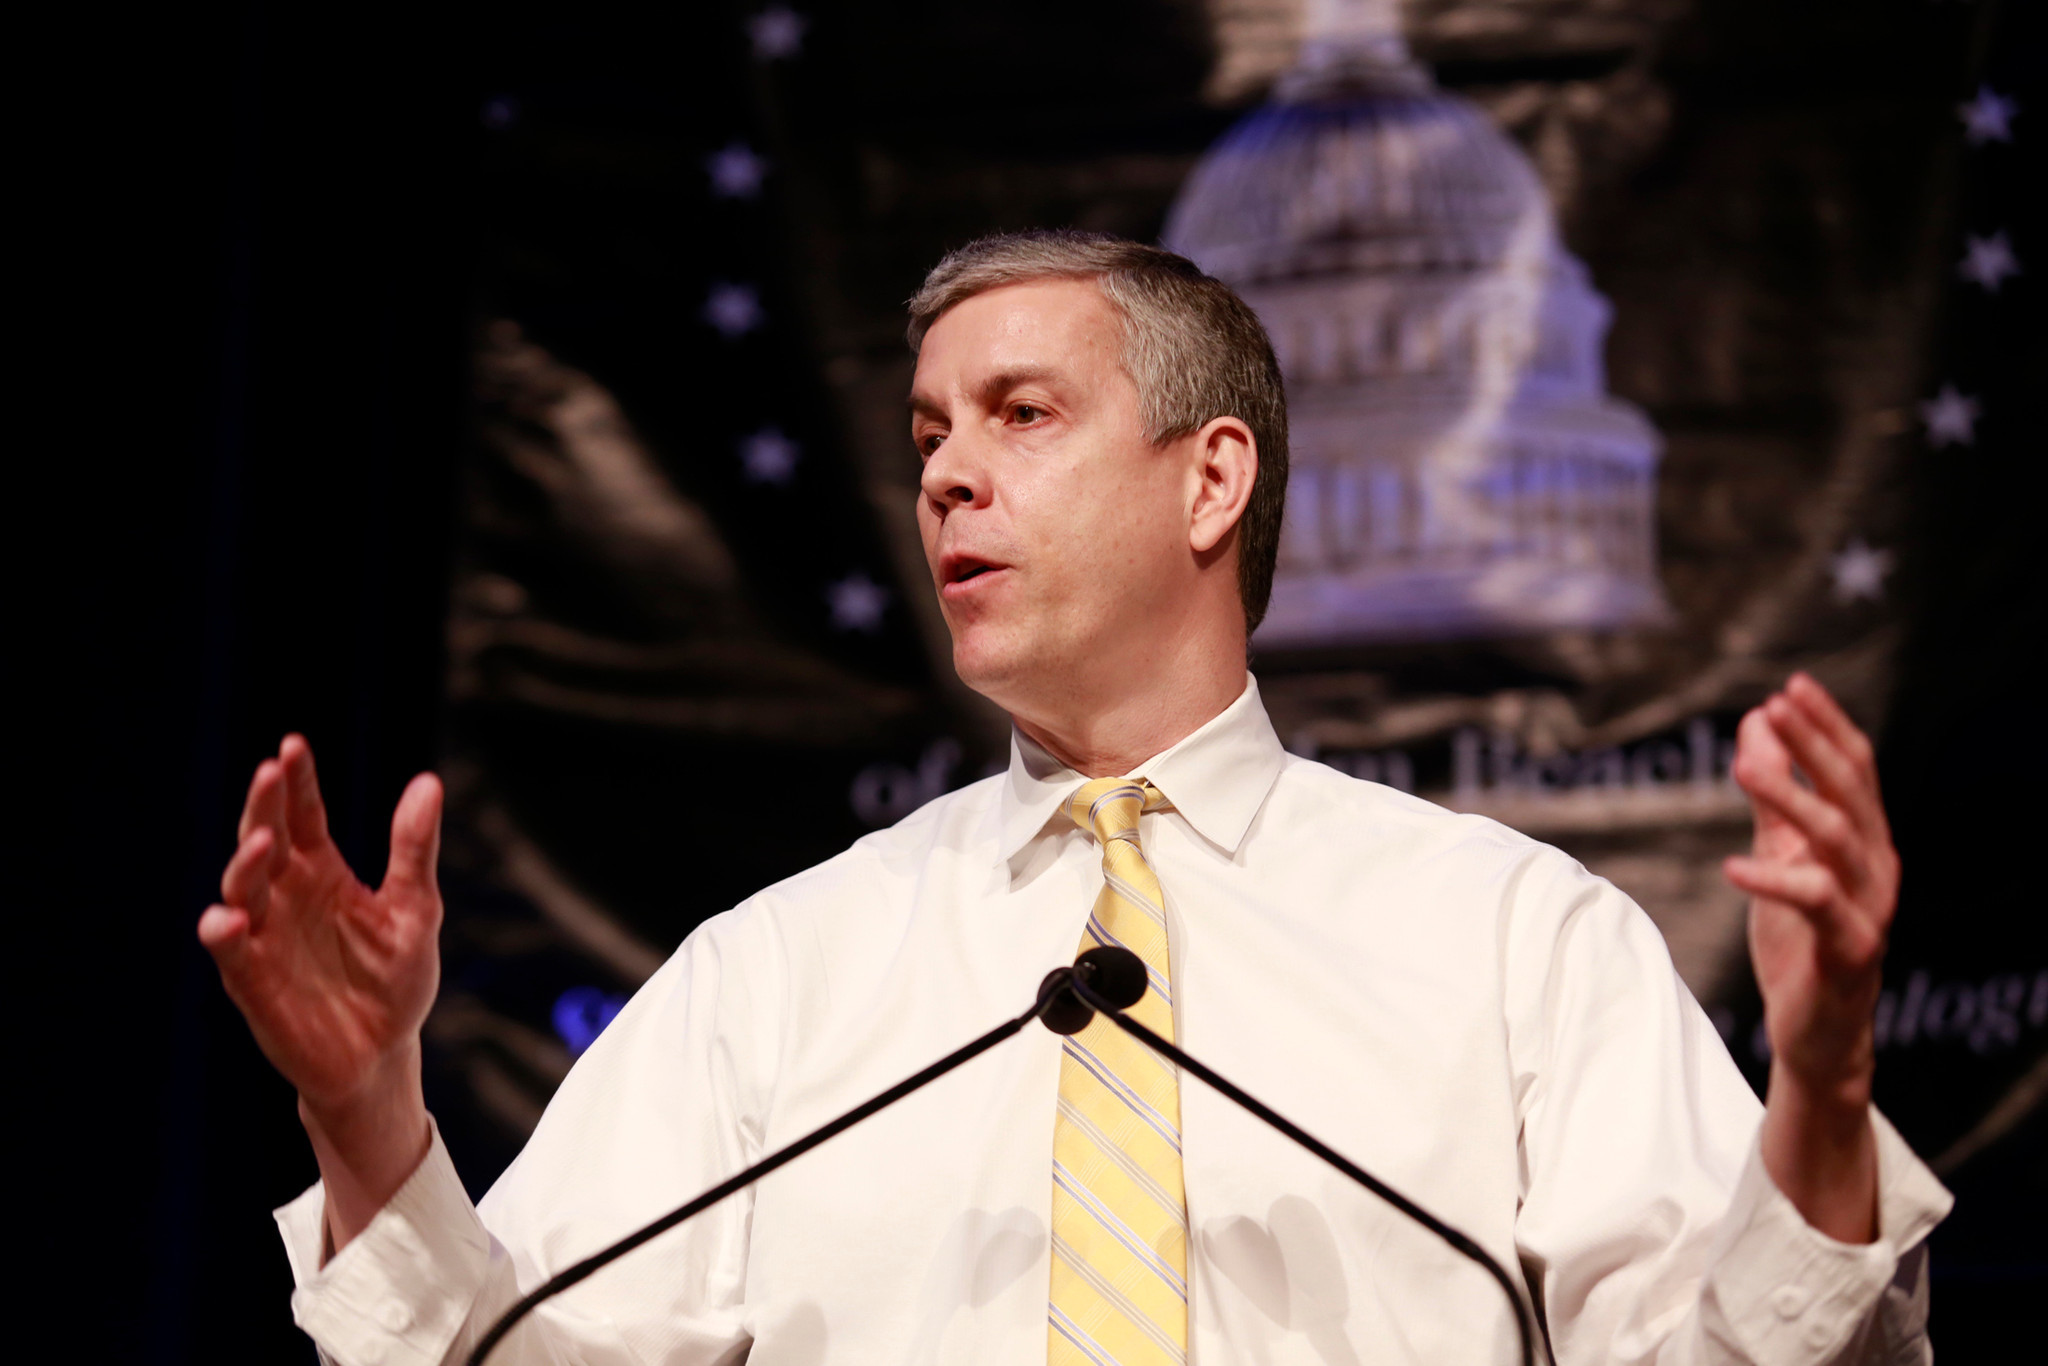 arne duncan visits west palm beach to talk testing education